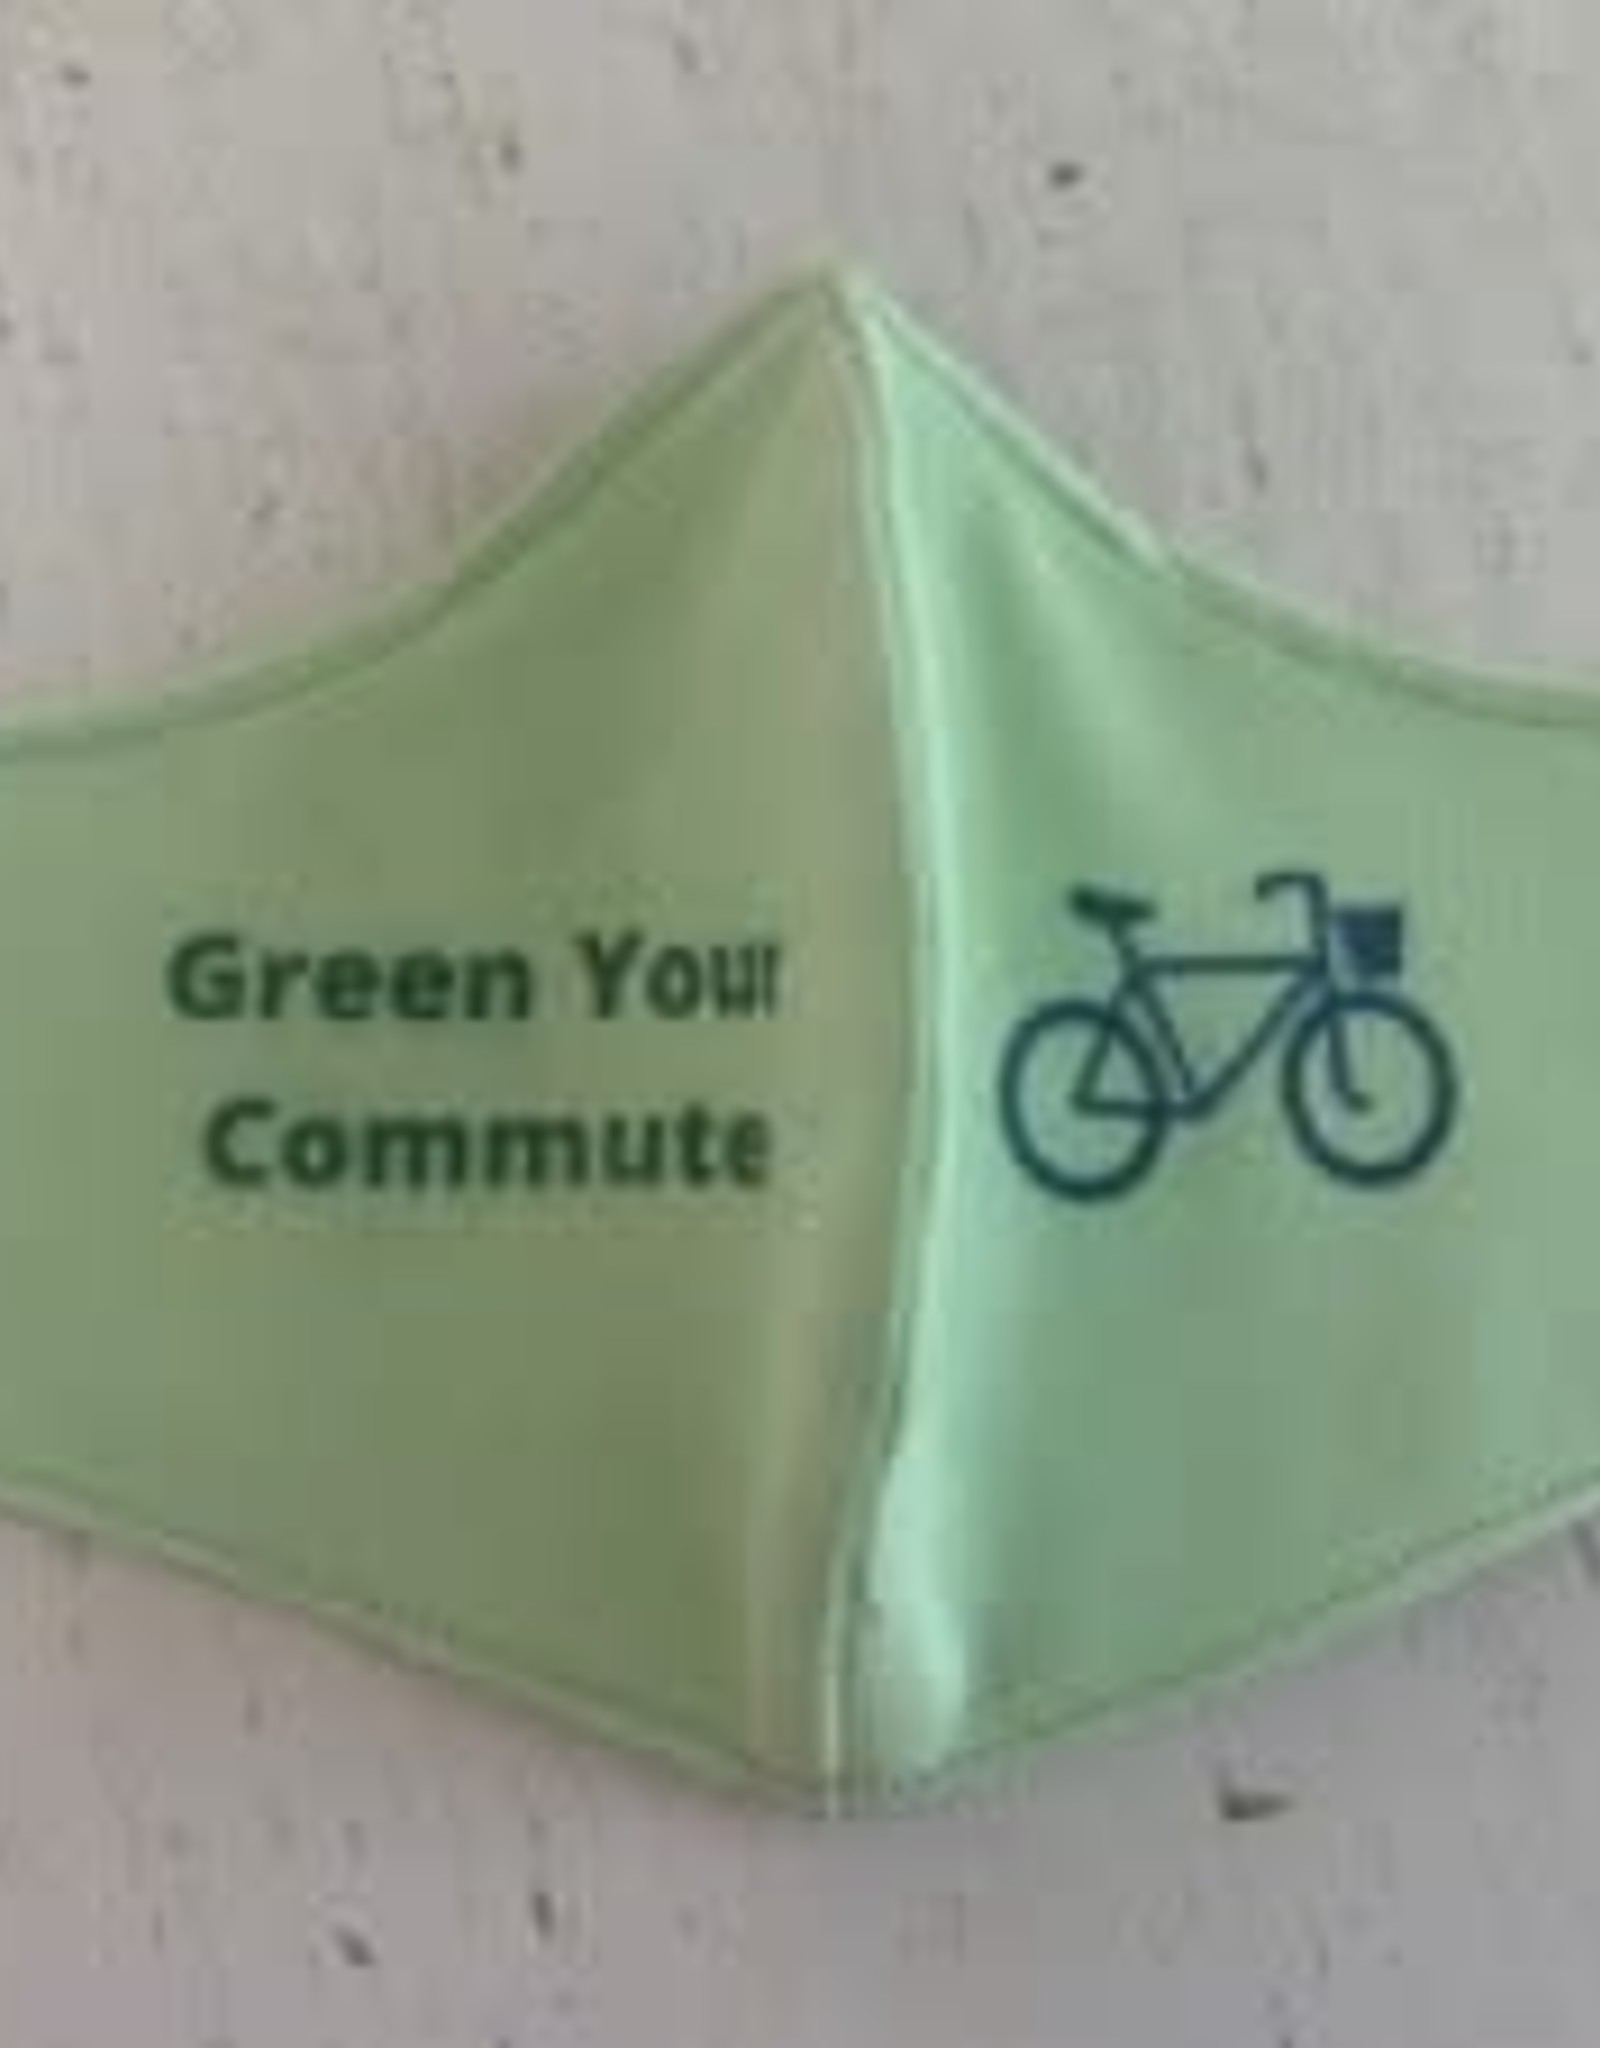 Green your commute mask